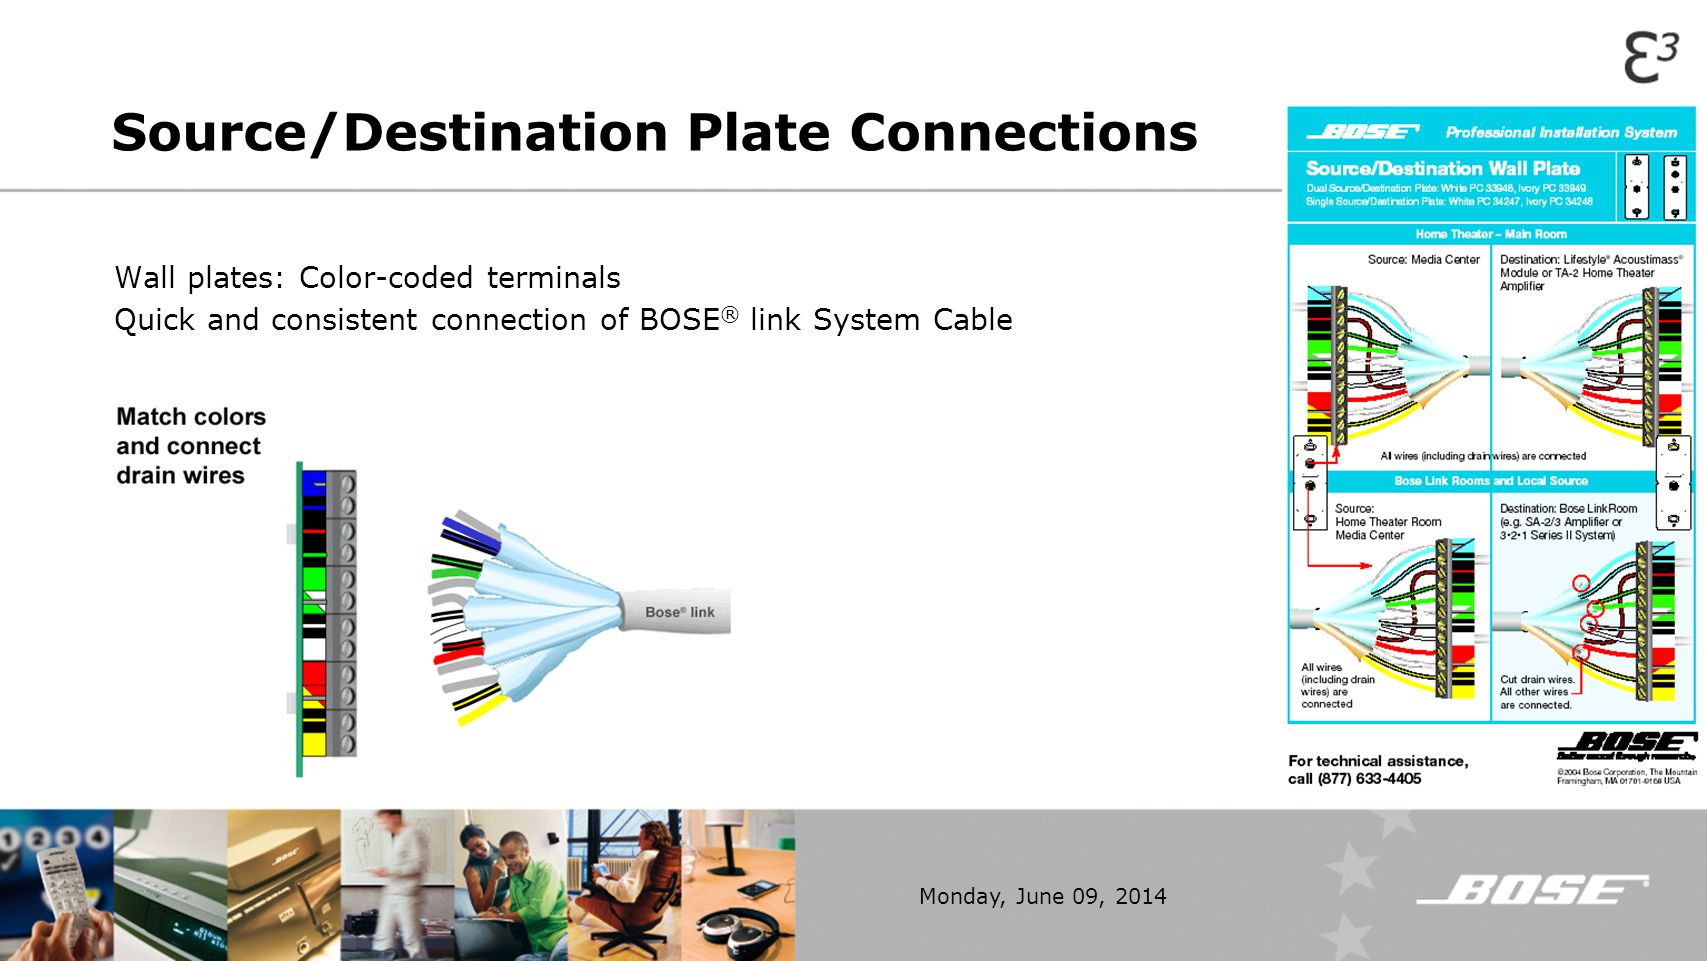 Source/Destination Plate Connections